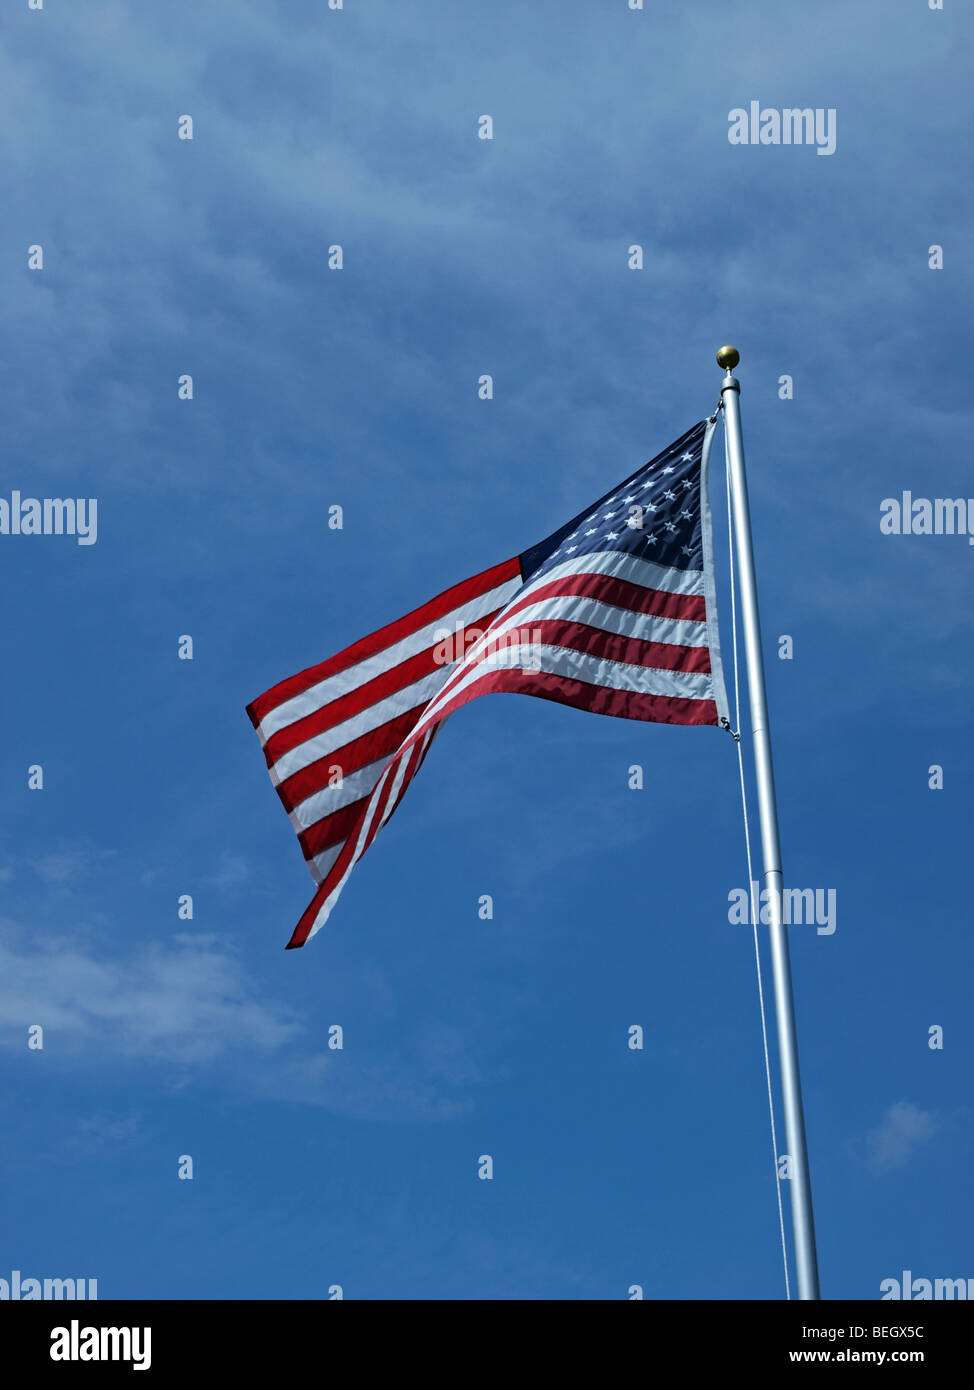 USA flag 'old glory' flowing on top of tall flagpole with blue sky behind - Stock Image